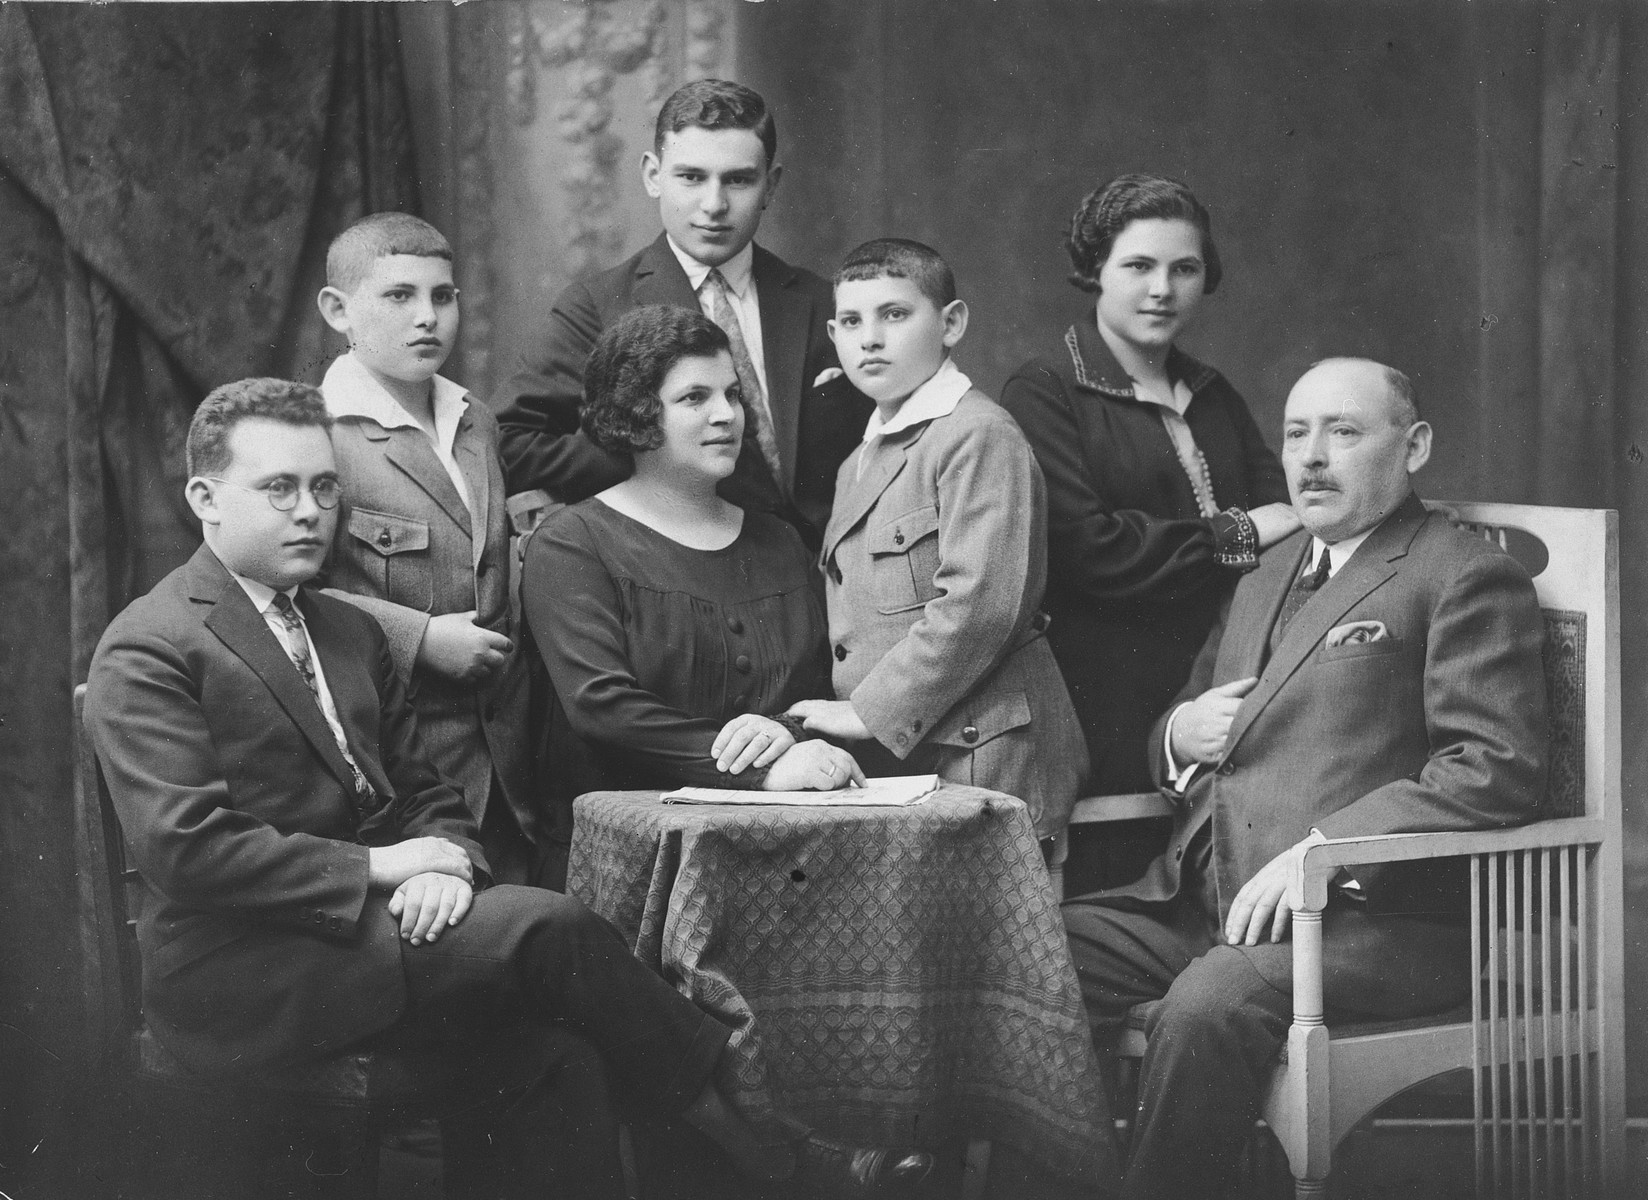 Studio portrait of a Jewish family from Sosnowiec Poland.  From left to right are Asher, Itzchak, Basha, Jacob, Solomon, Felicia and Bernard Grajcer.